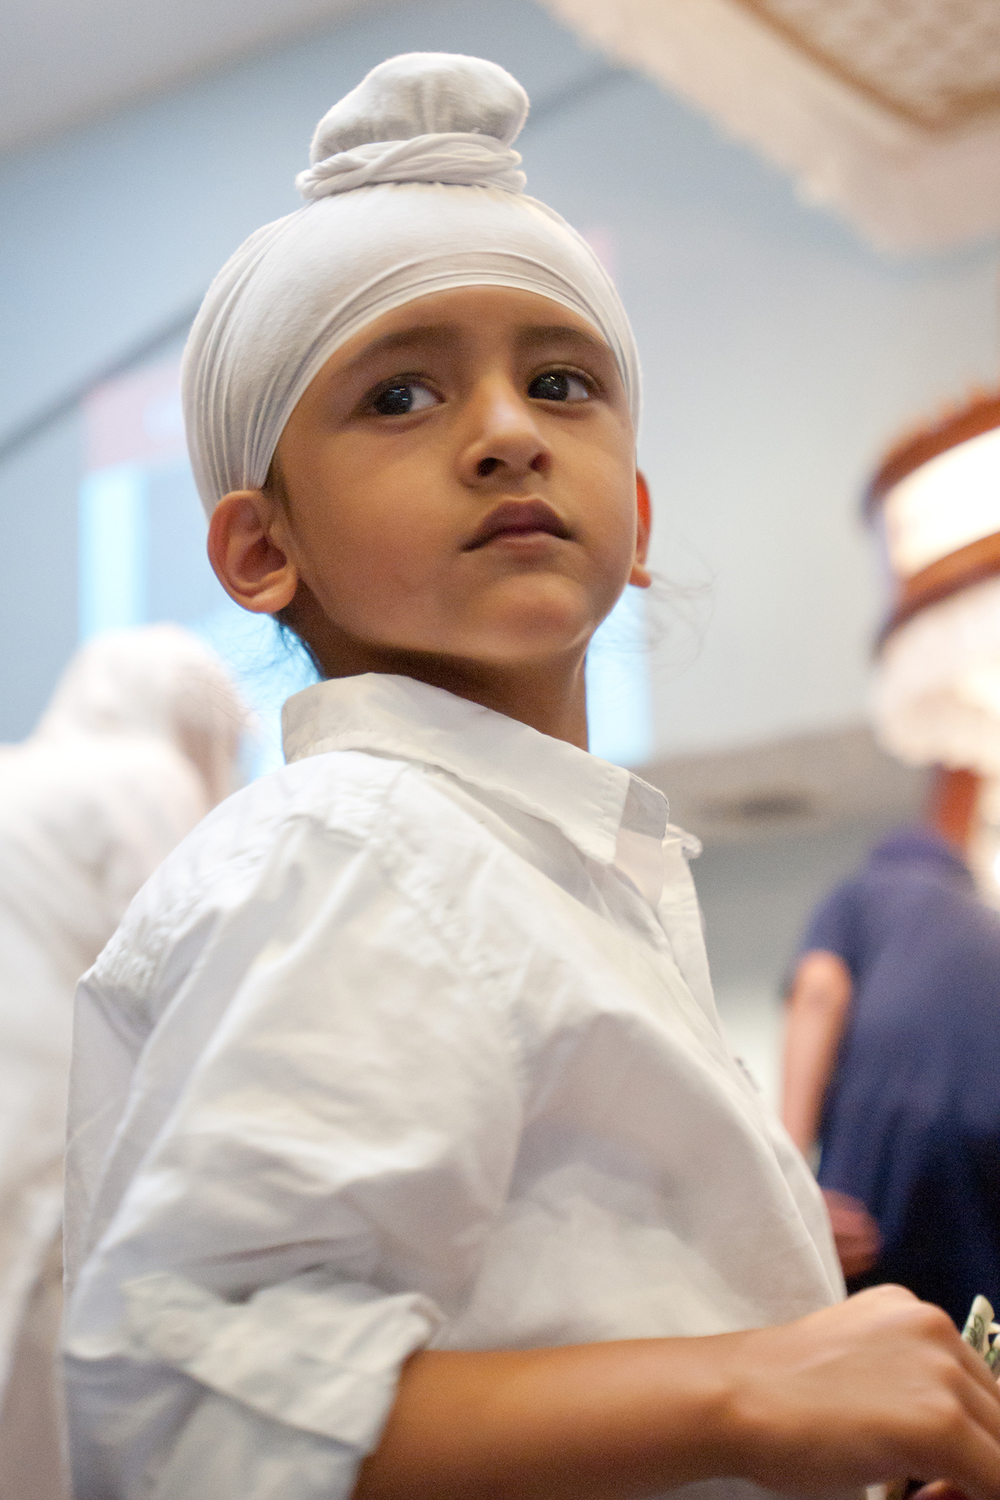 Young Sikh